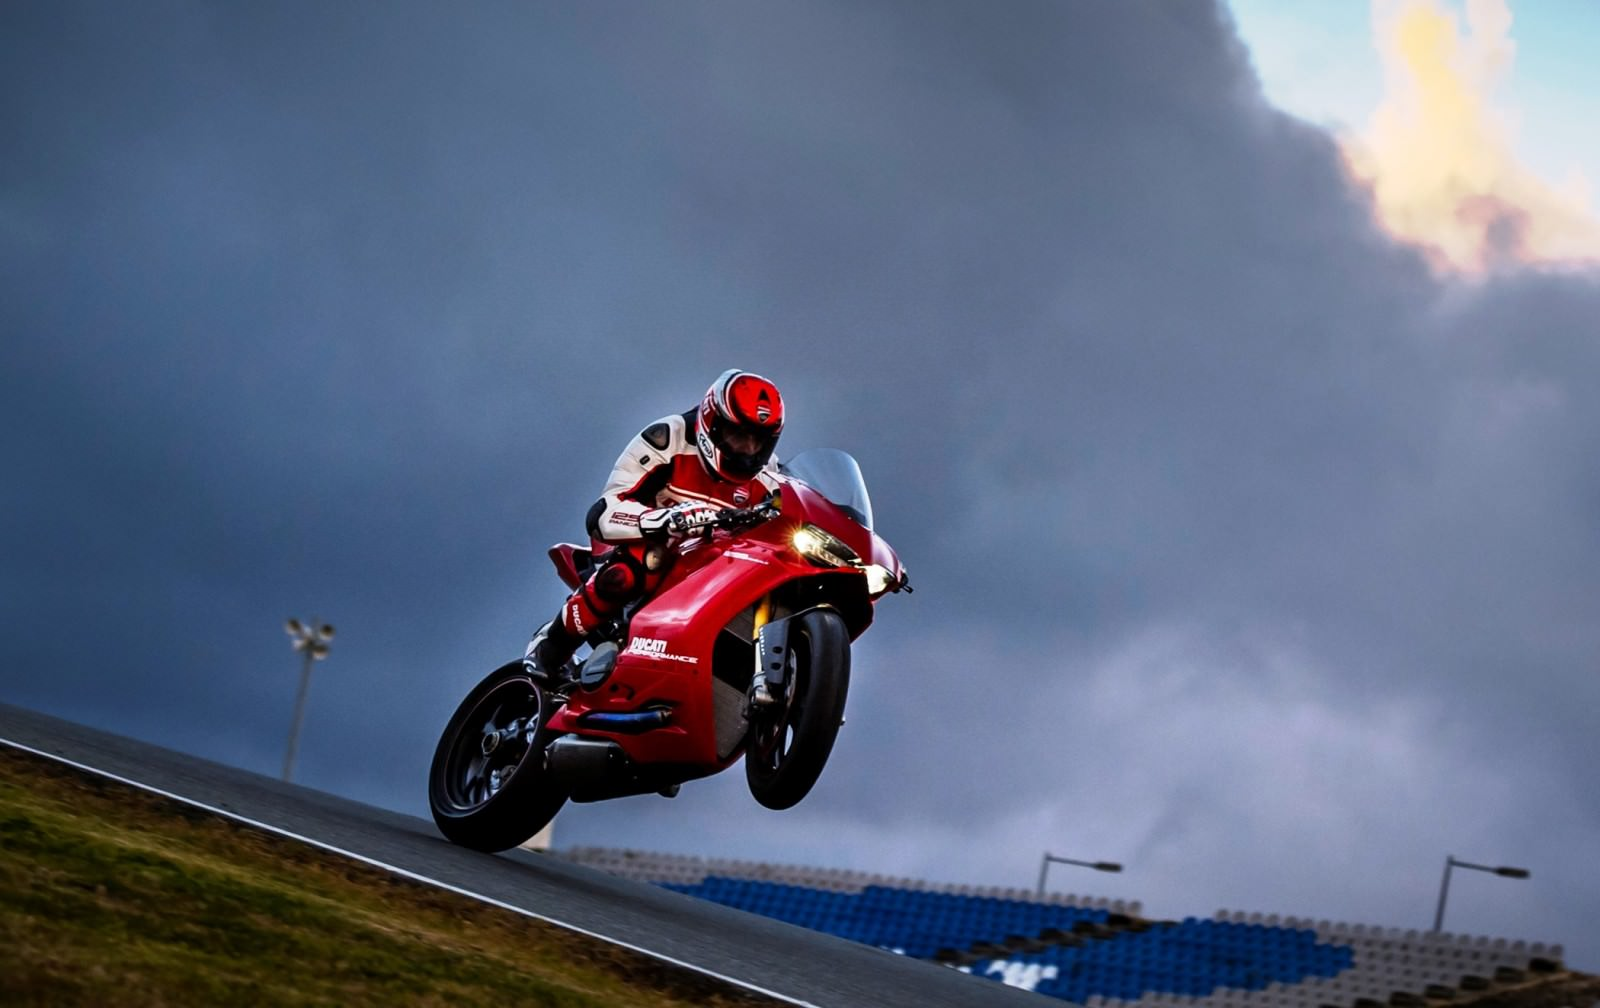 147-1299PanigaleS_KitPerformance_68